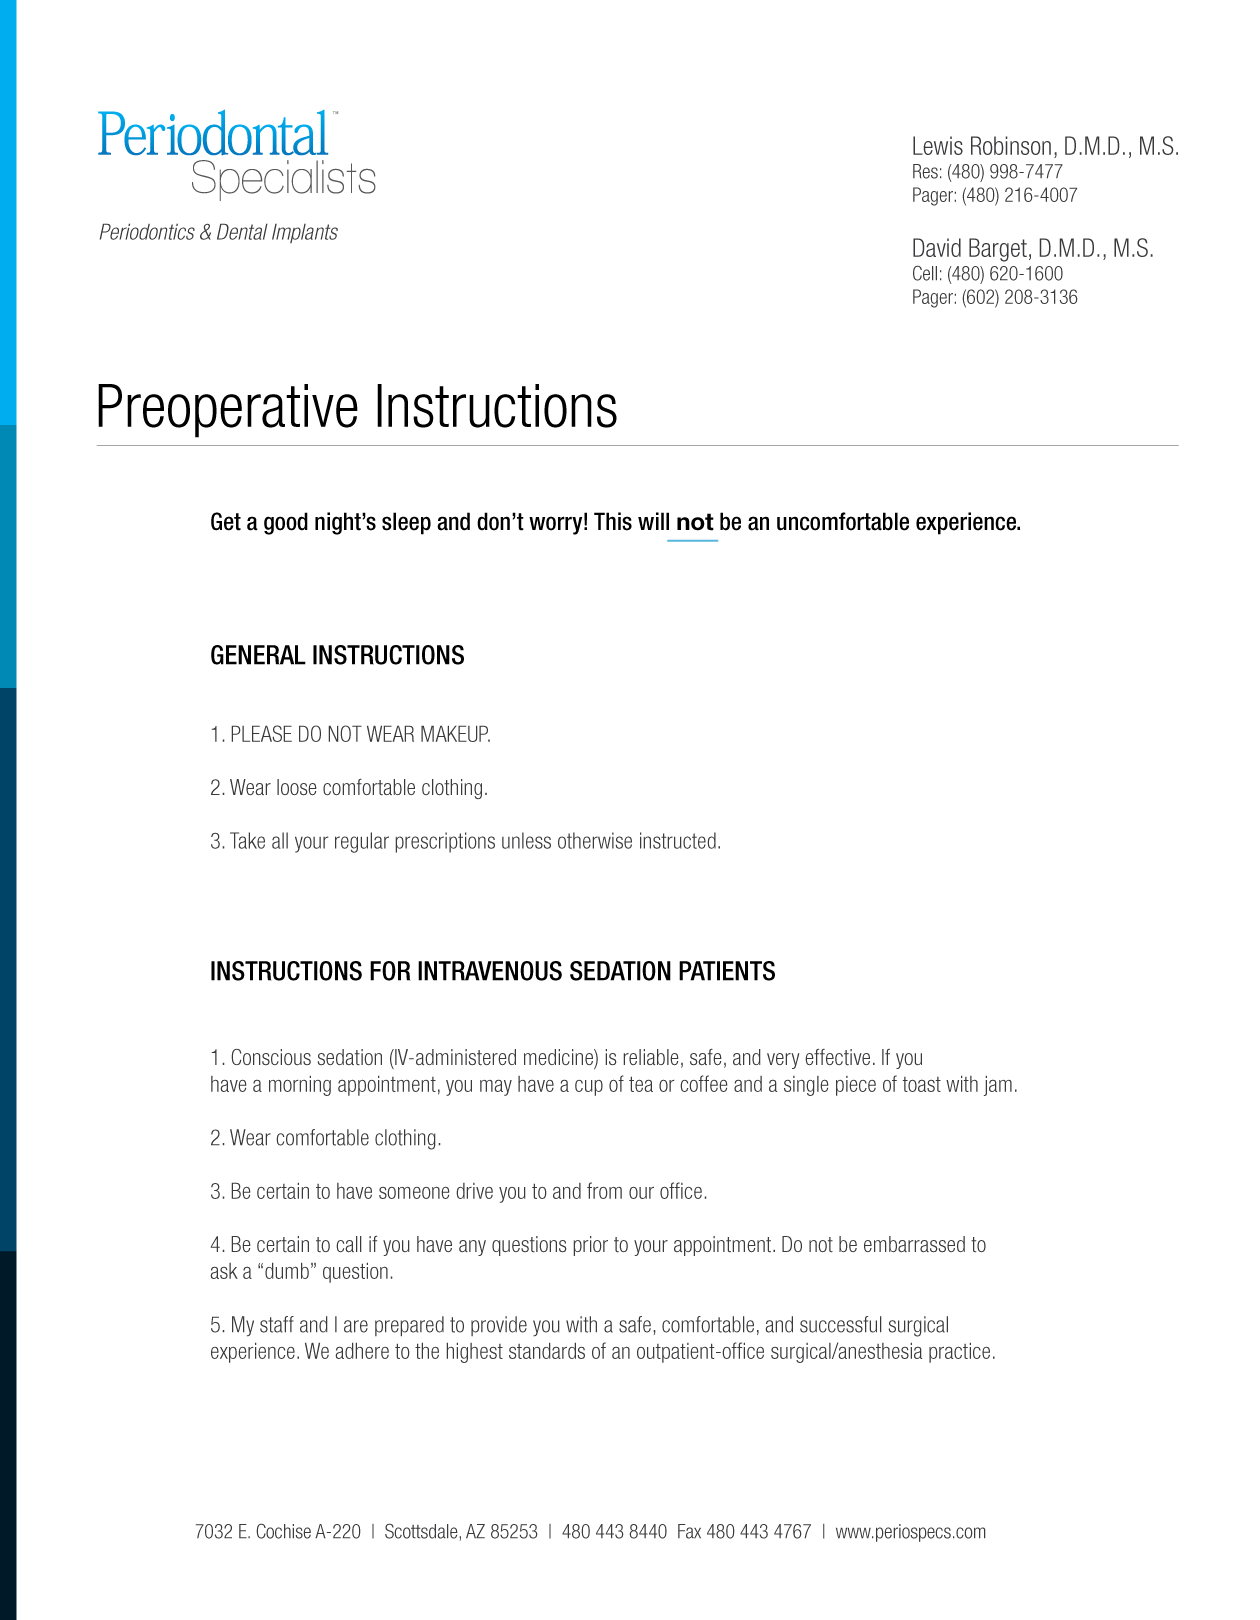 Preop Instructions